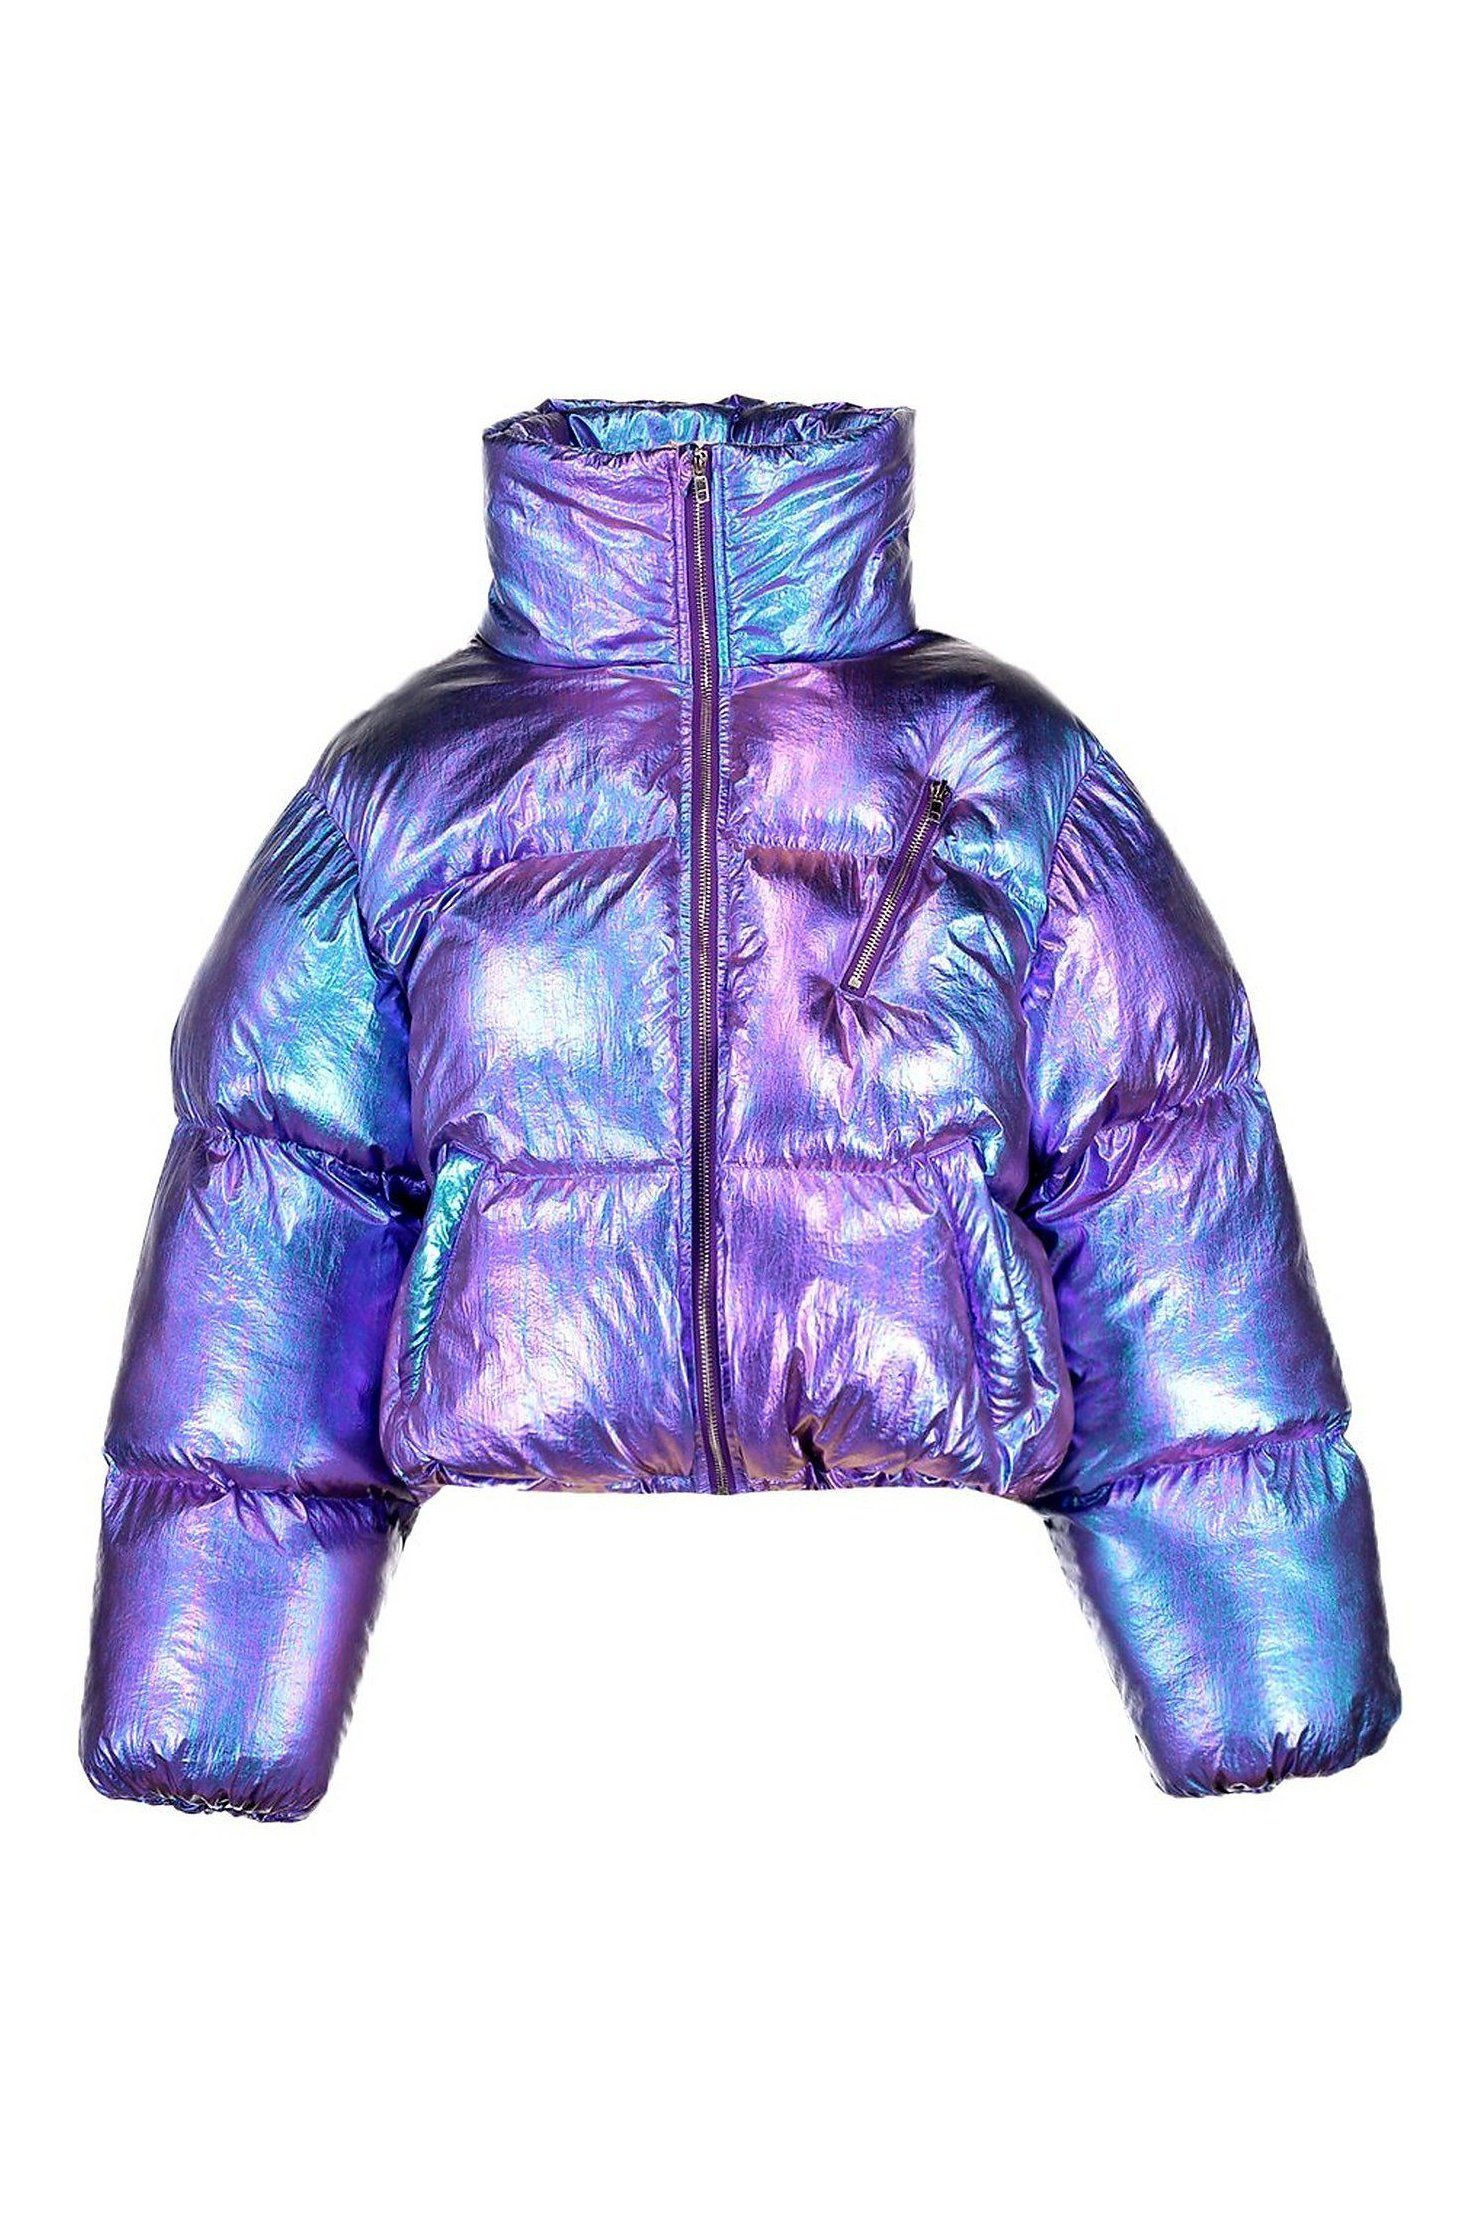 Metallic Puffer Jacket Boohoo Metallic Puffer Jacket Wrap Up In The Latest Coats And Jackets And Holographic Jacket Realistic Drawings Holographic Fashion [ 2223 x 1482 Pixel ]